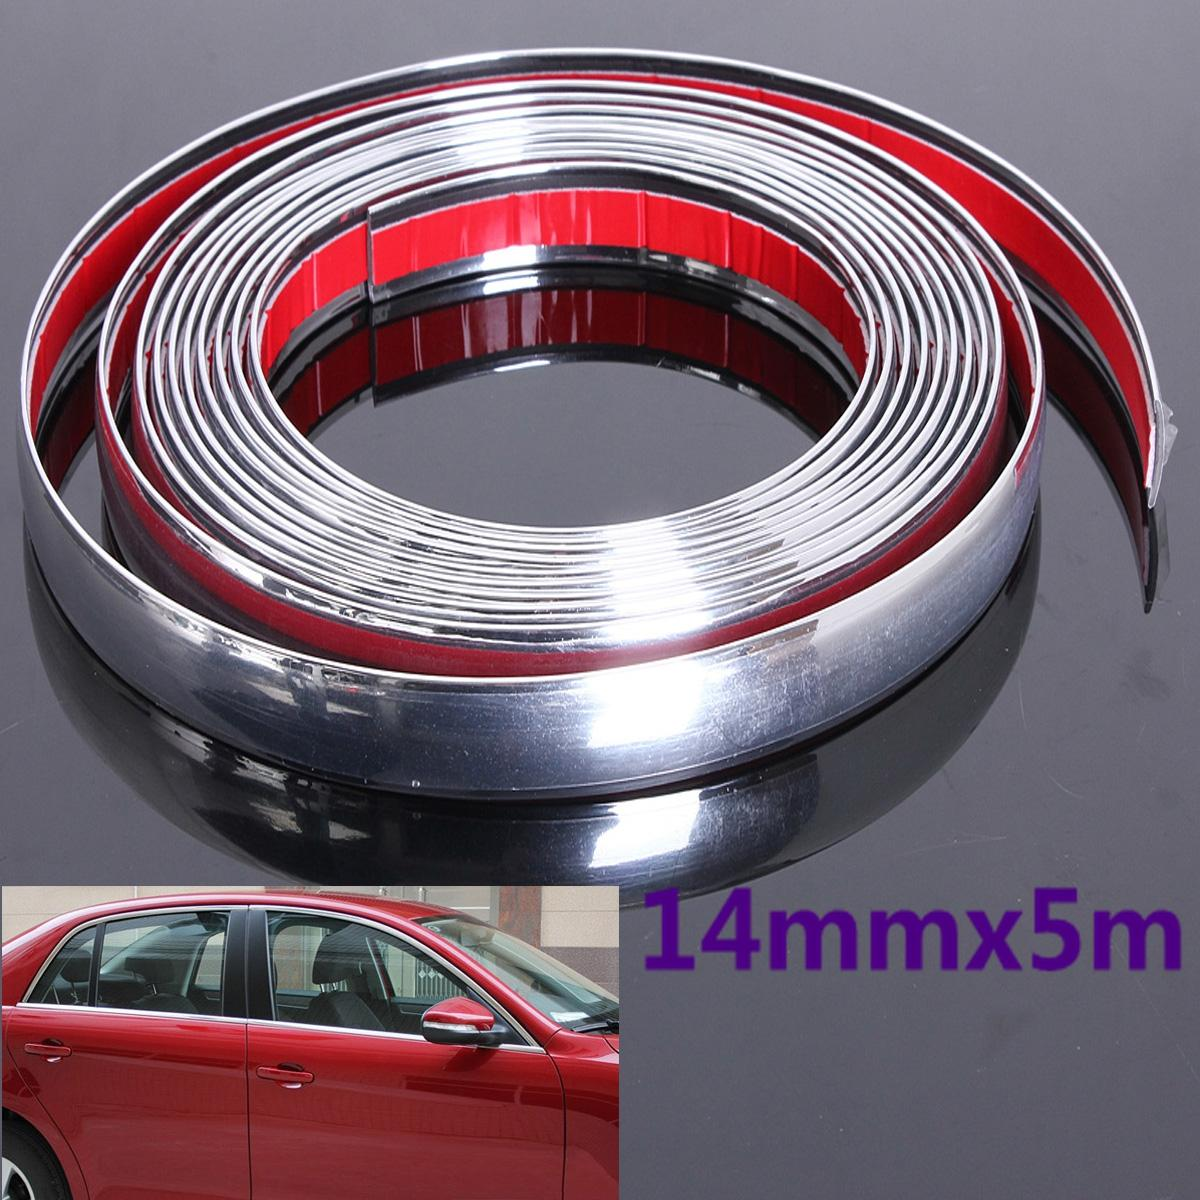 14mm x 5 m Chrome Car Styling Moulure Garniture Auto-Adhésif Crash Protecter